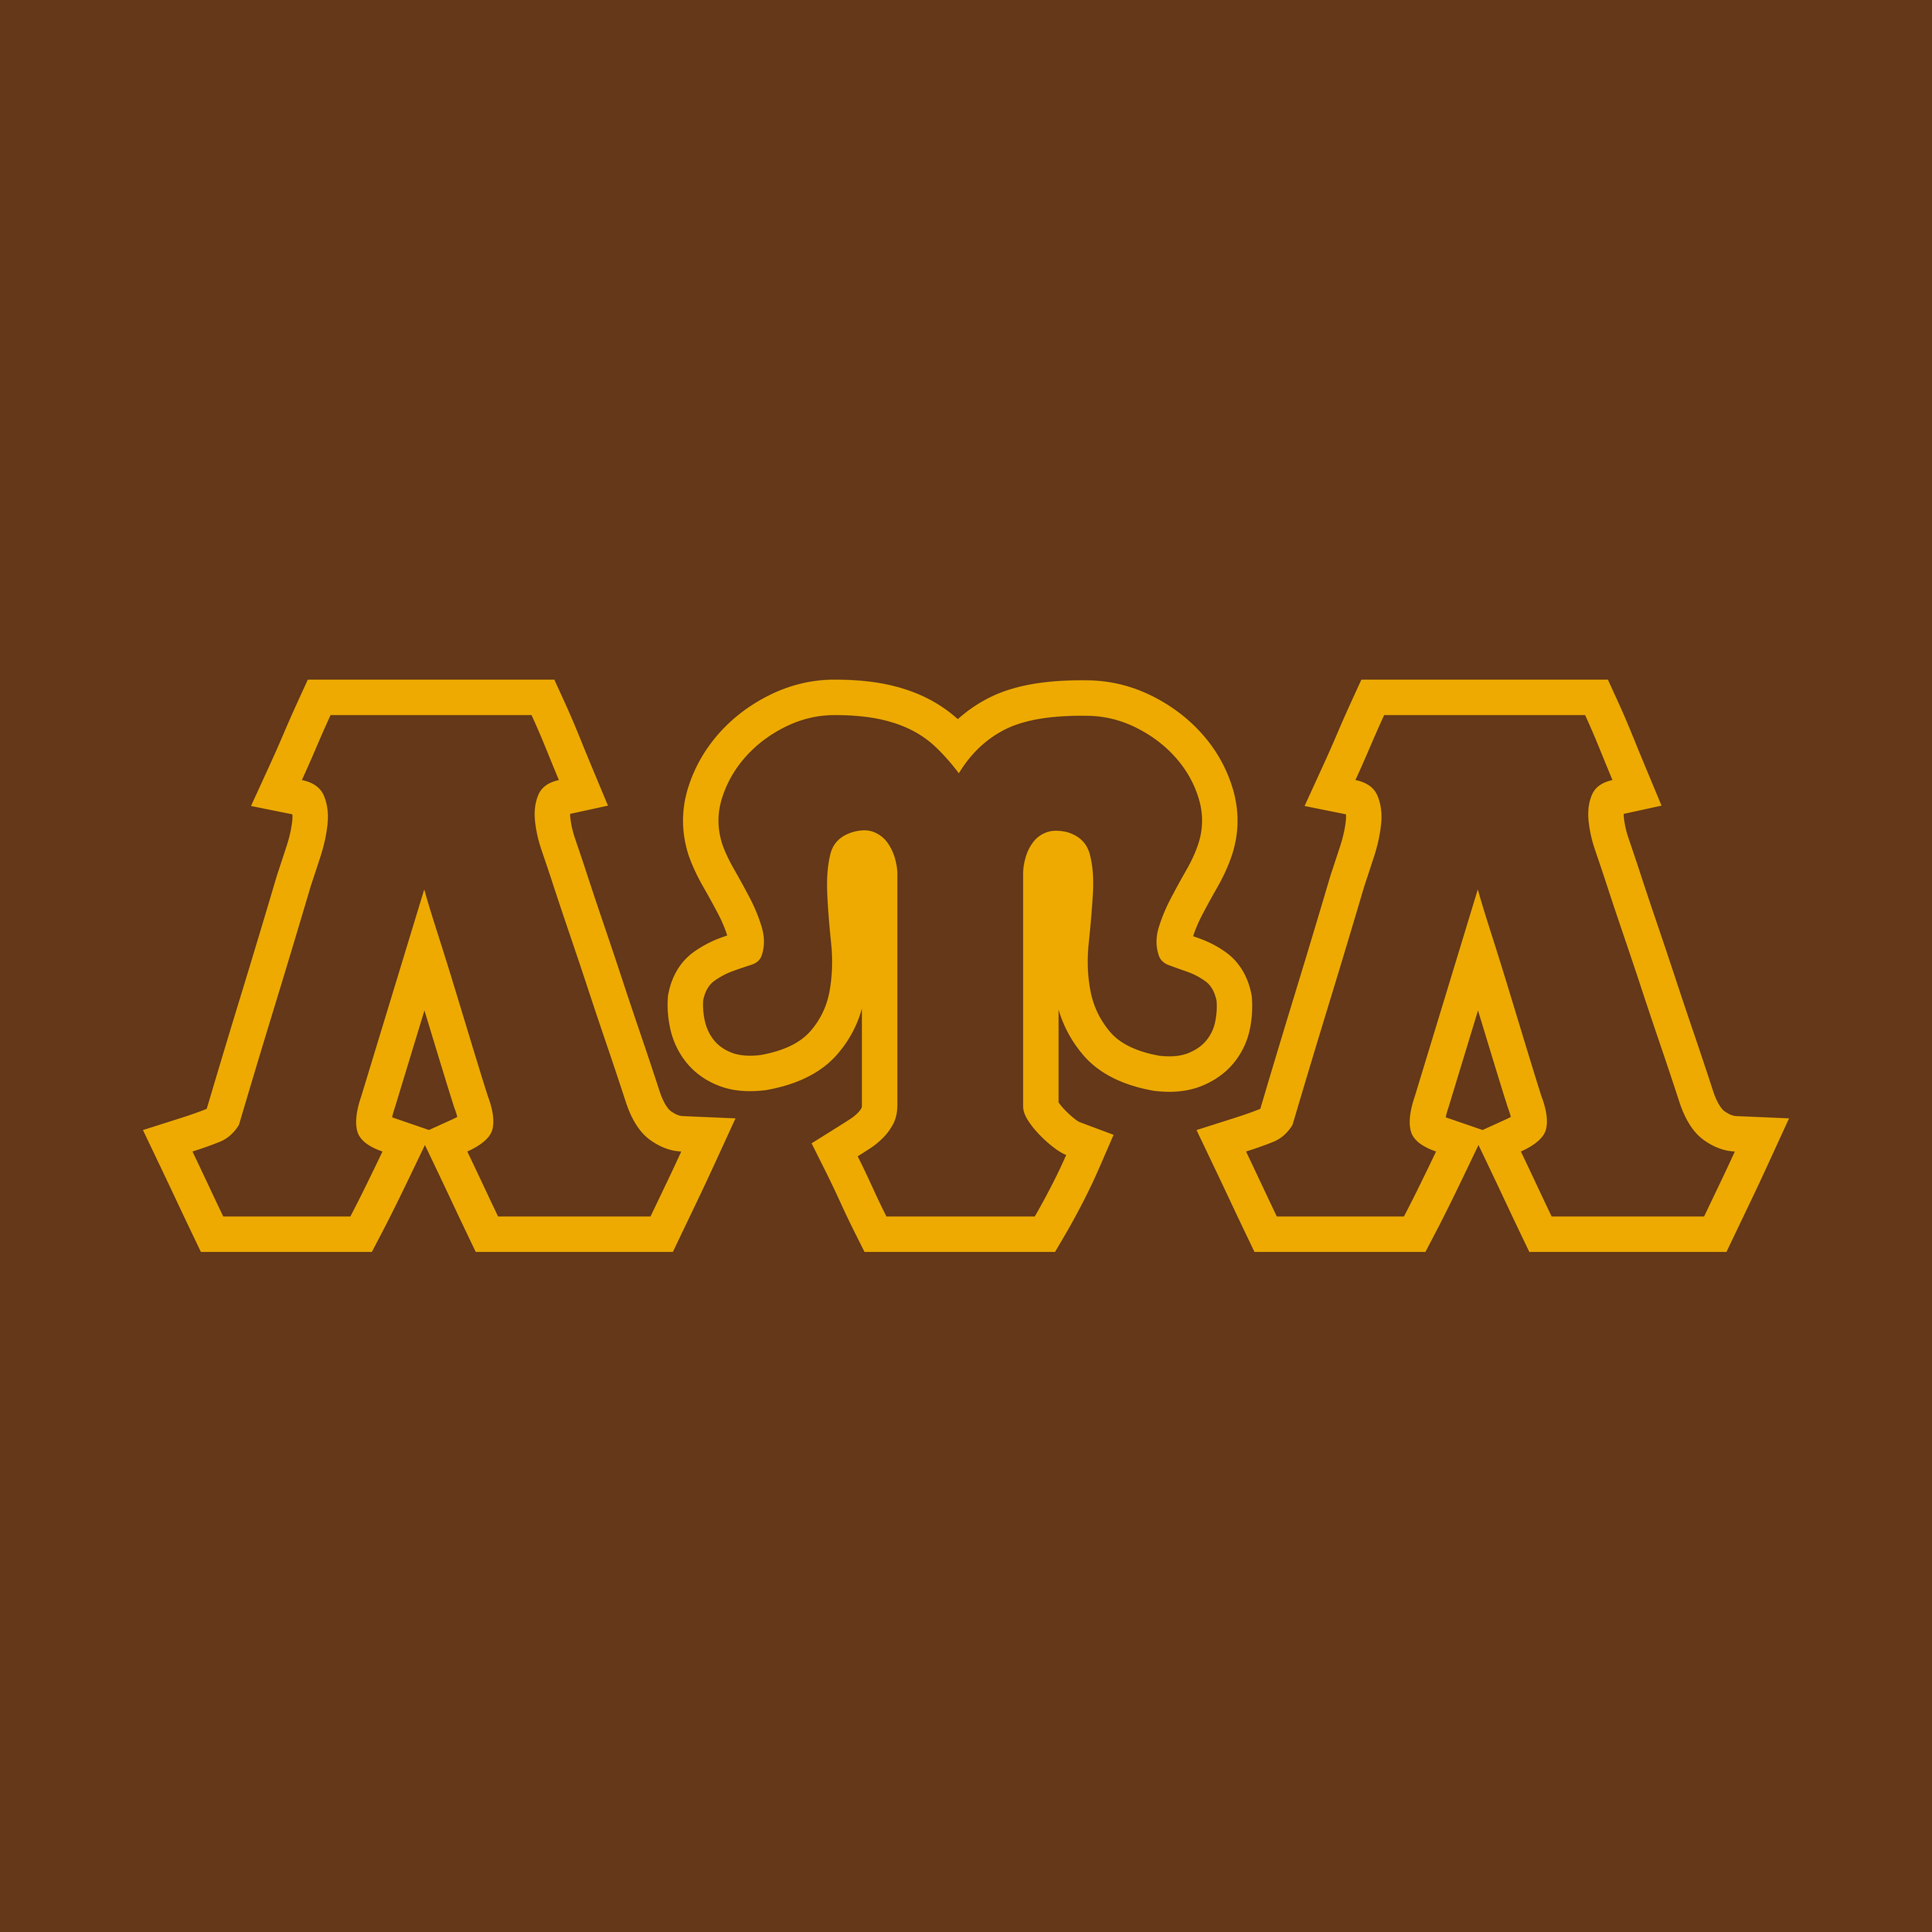 LUL Letters Brown/Gold on Brown